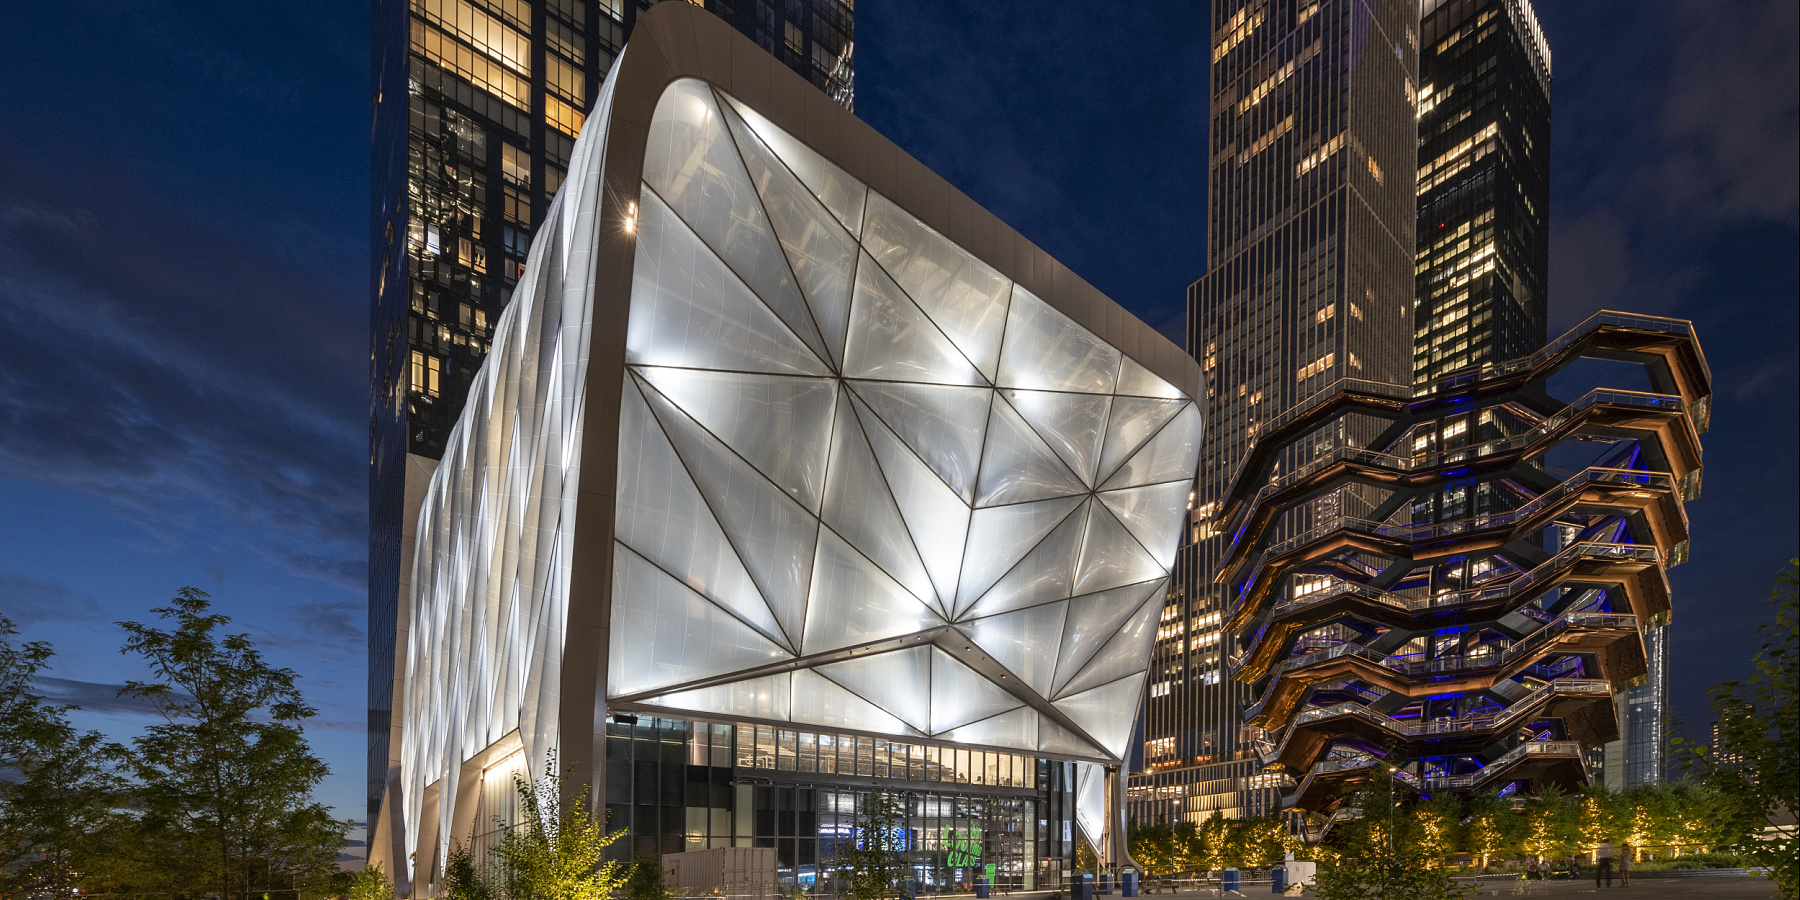 The Shed/Hudson Yards, New York City / ERCO, New York City, Hudson Yards, United States